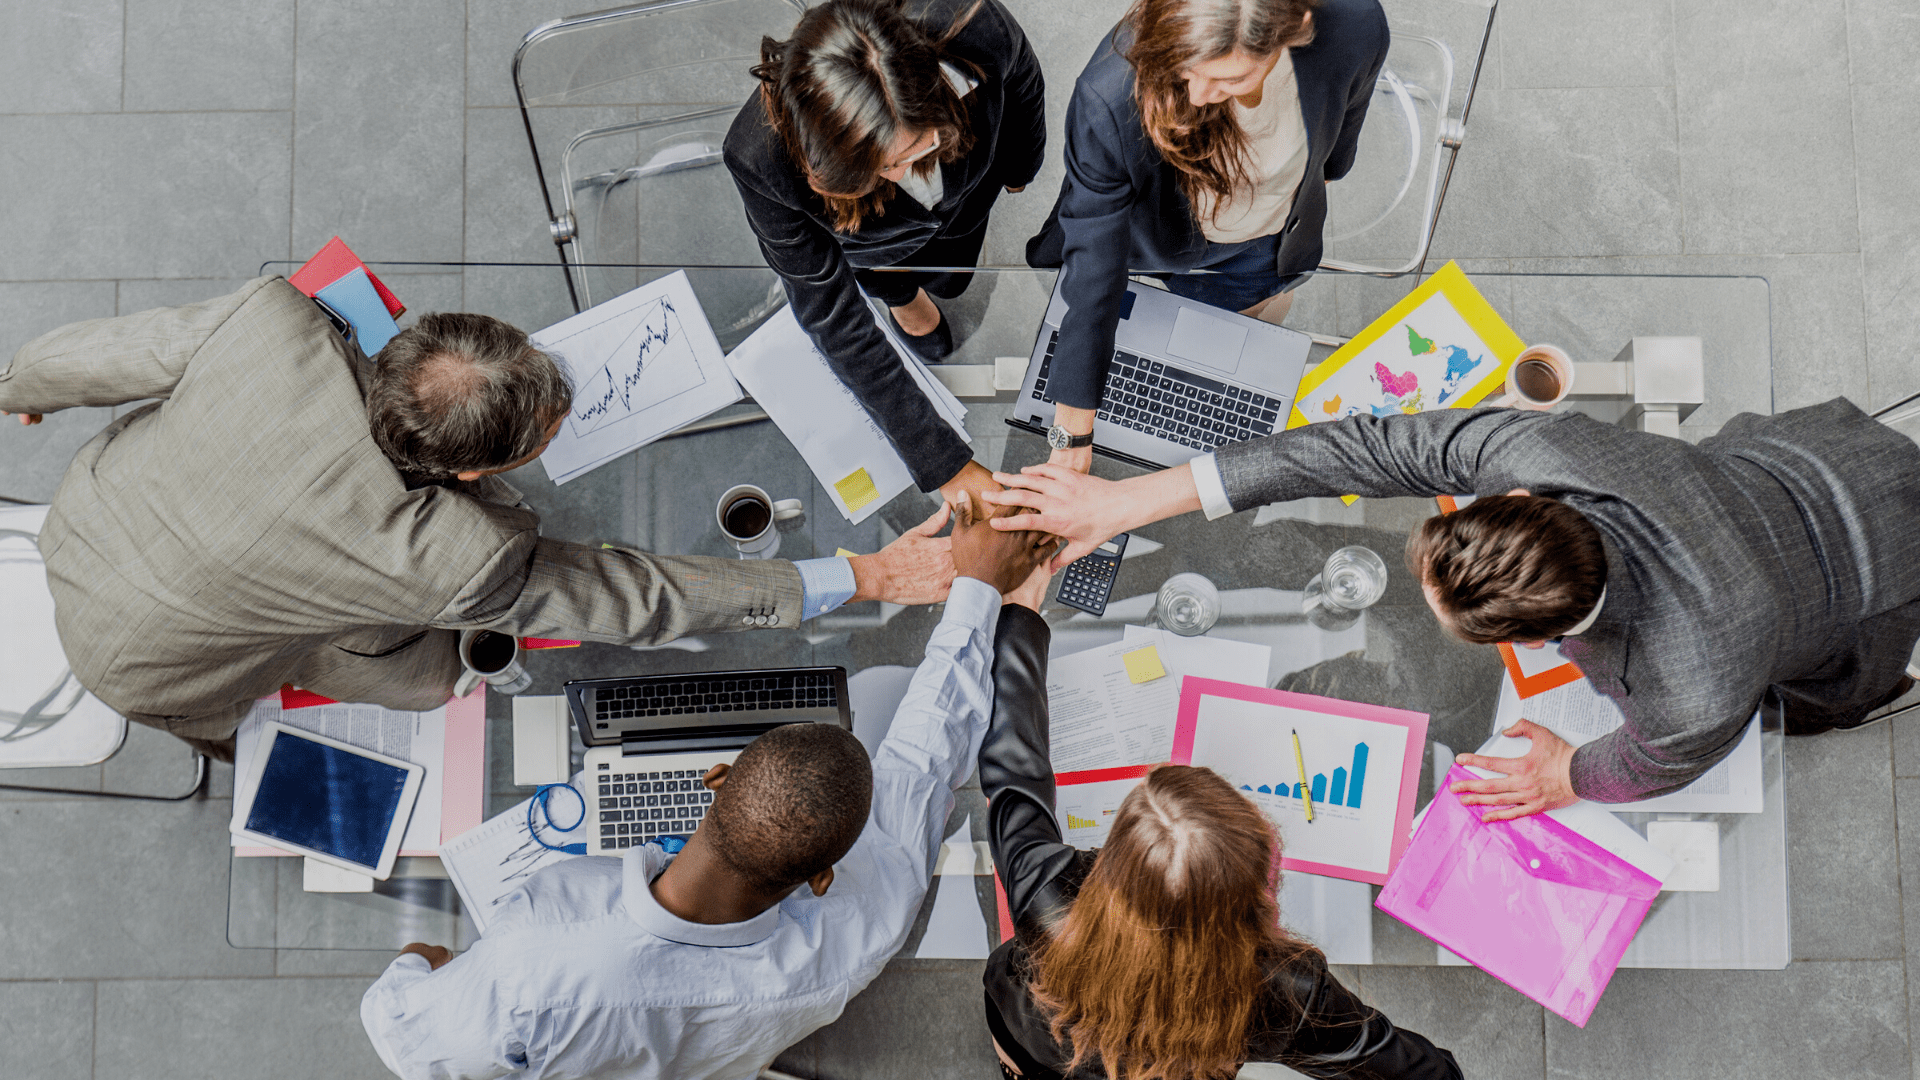 (Webinar) Engaging the Right People to Build Effective Teams